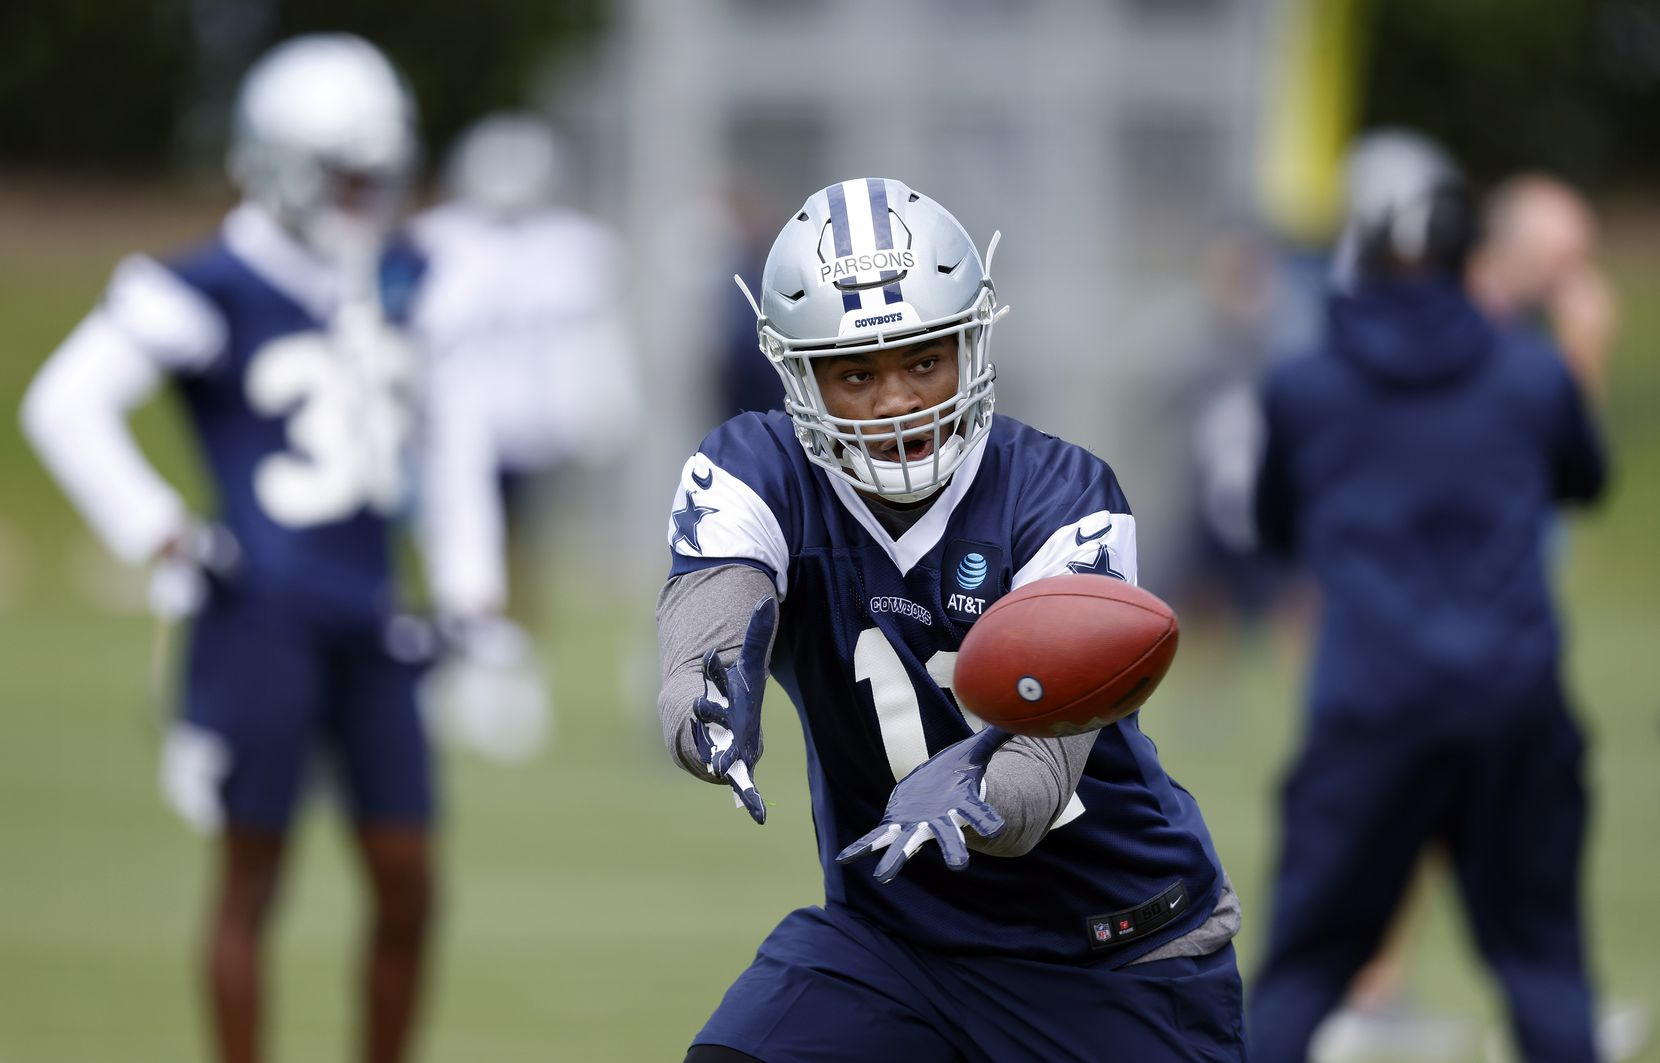 Dallas Cowboys rookie linebacker Micah Parsons (11) catches a pass during rookie minicamp at the The Star in Frisco, Texas, Friday, May 14, 2021. (Tom Fox/The Dallas Morning News)